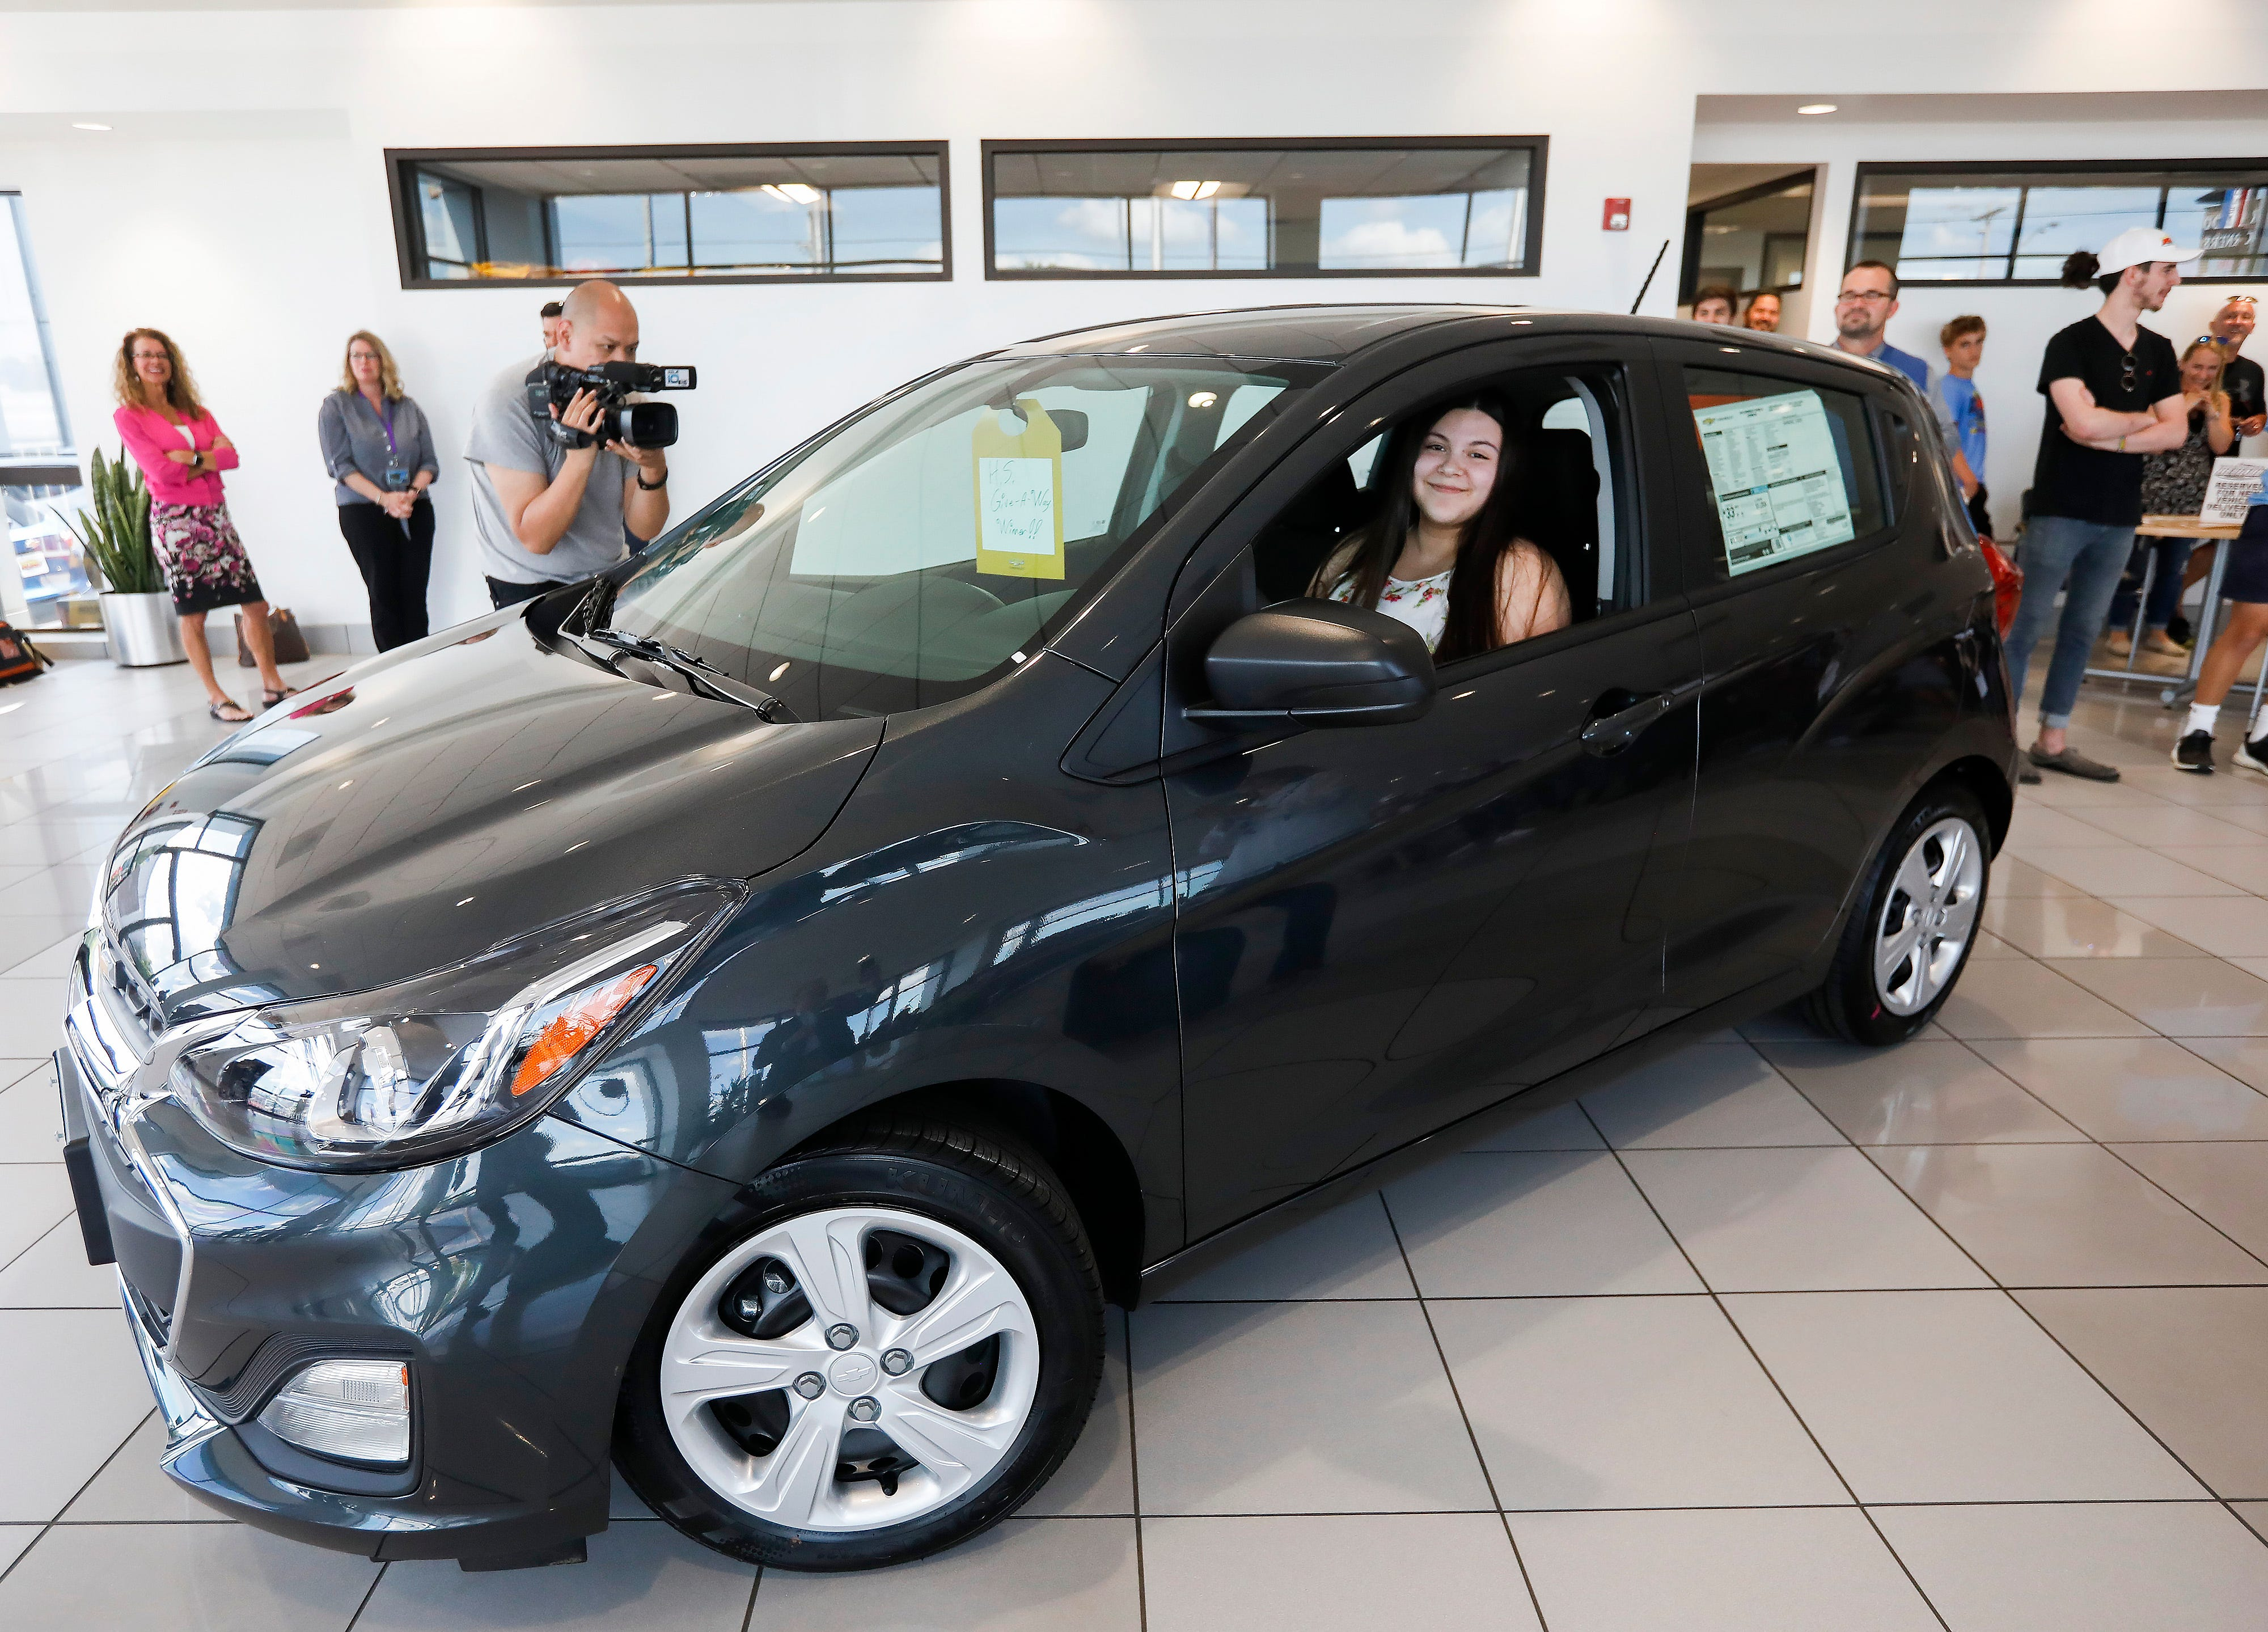 Marina Guevara, a recent graduate of Central High School, smiles after she won the first 2019 Chevy Spark from Reliable Chevrolet on Monday, May 14, 2019. Students from Springfield Public Schools who participated in Project Graduation, a safe and sober celebration following graduation, were eligible to win a car from the dealership in a drawing. In years past, Reliable Chevrolet gave away one car. This year they gave away two.